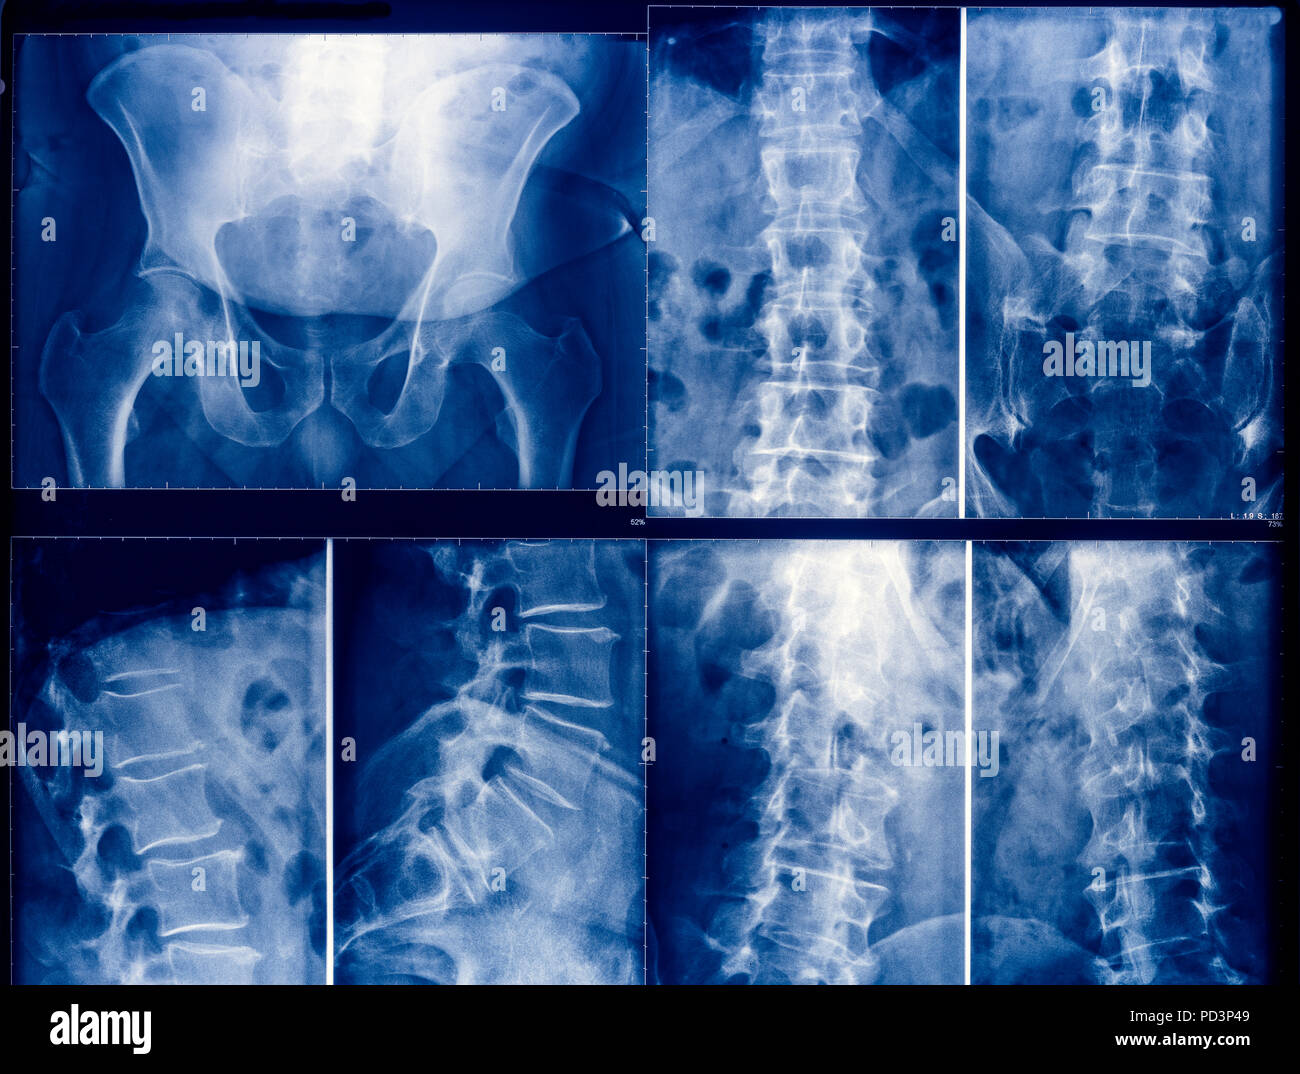 Blue coloured X-ray pictures of a human pelvis and spinal column - Stock Image